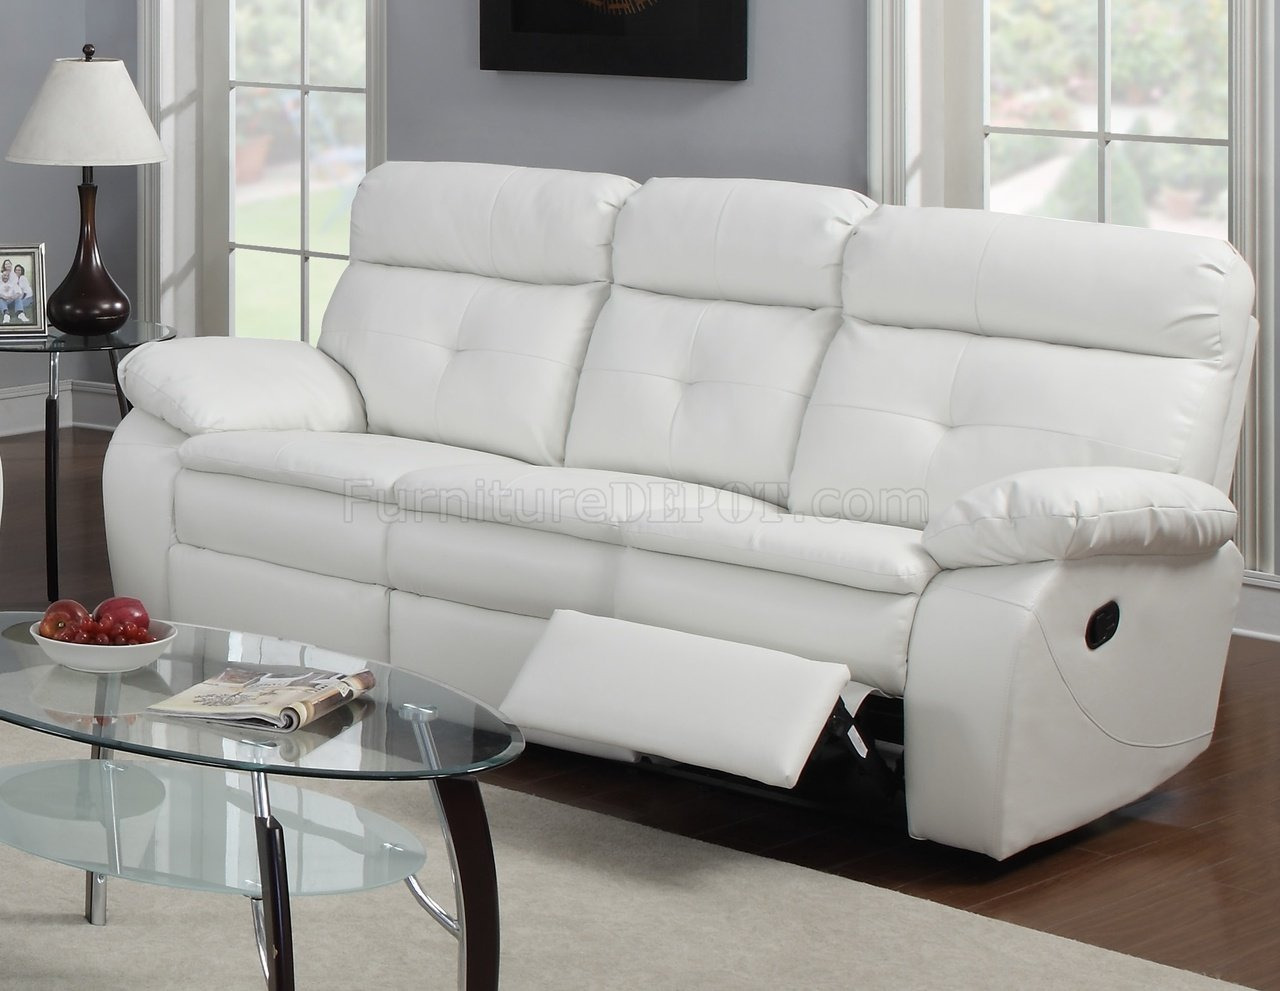 G577a reclining sofa loveseat in white bonded leather by glory Leather reclining sofa loveseat